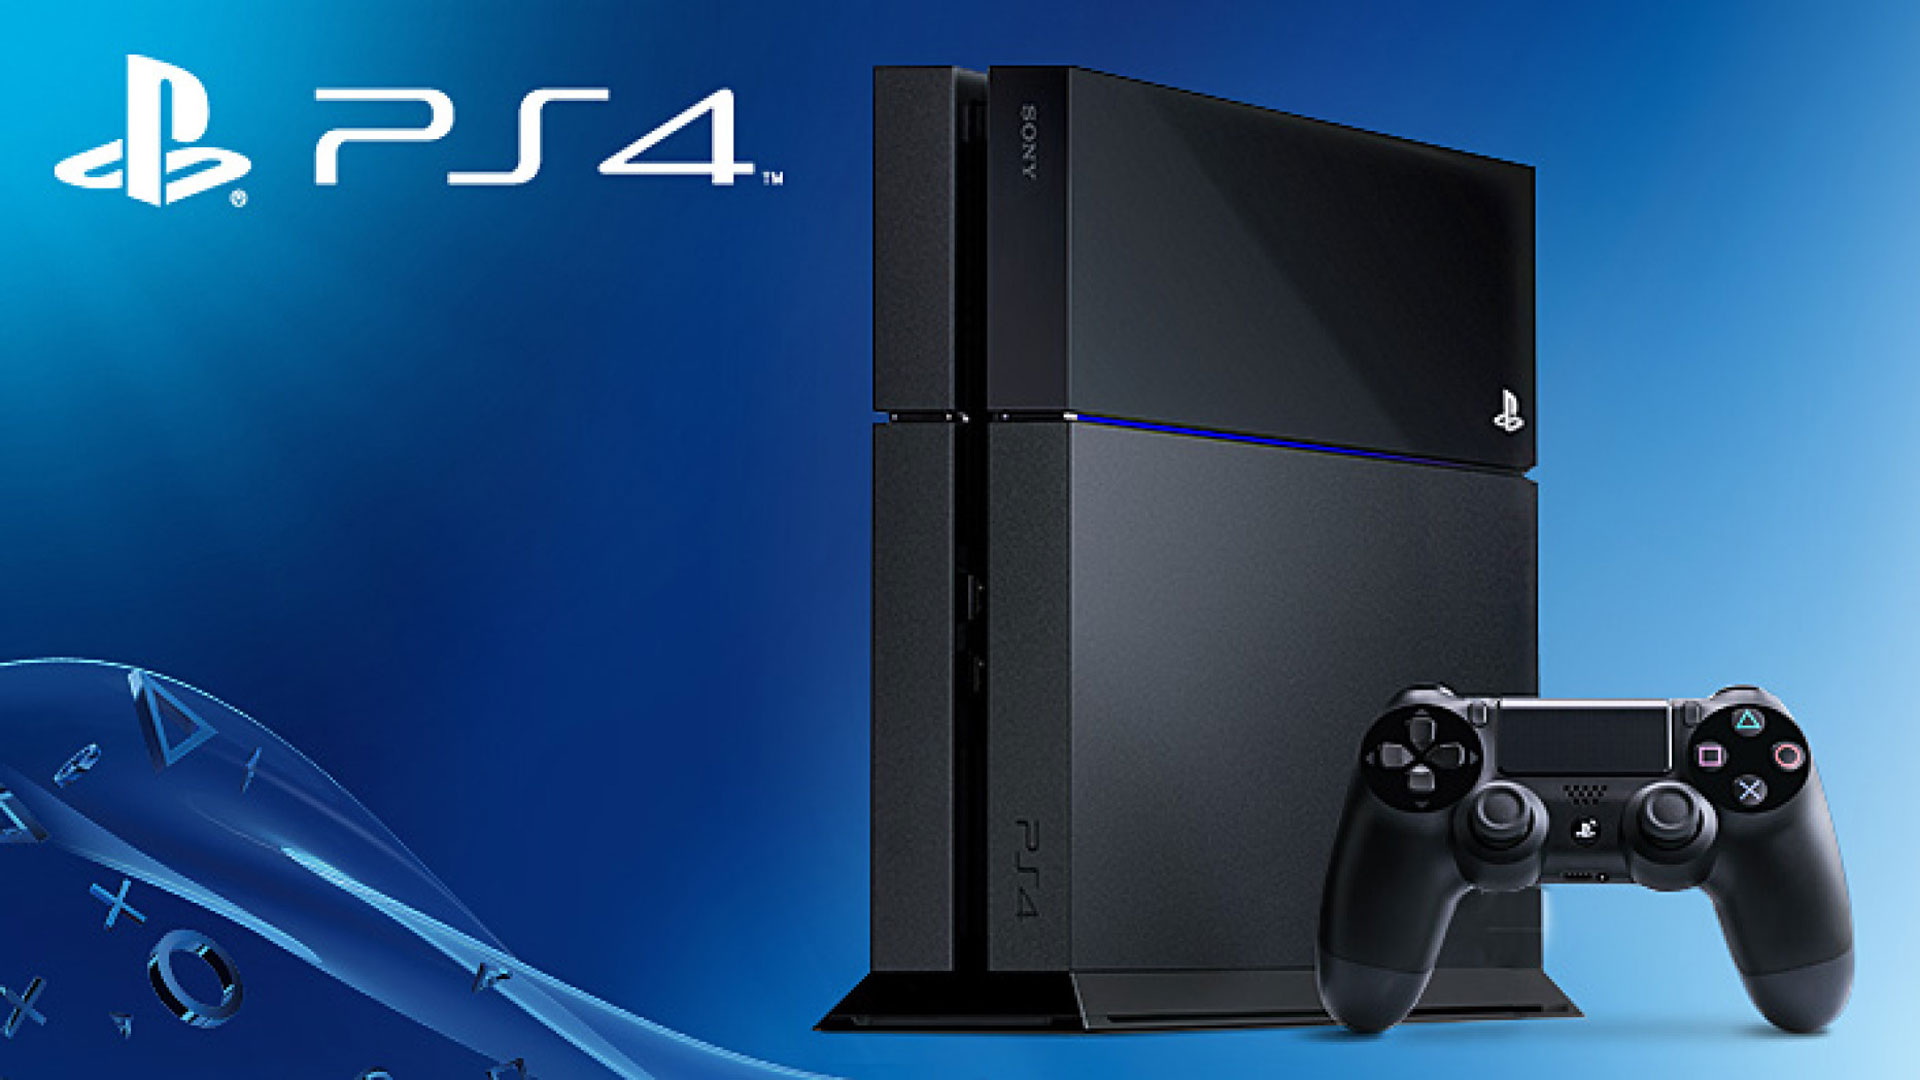 PS4 allows 4TB hard drive upgrade without any issue